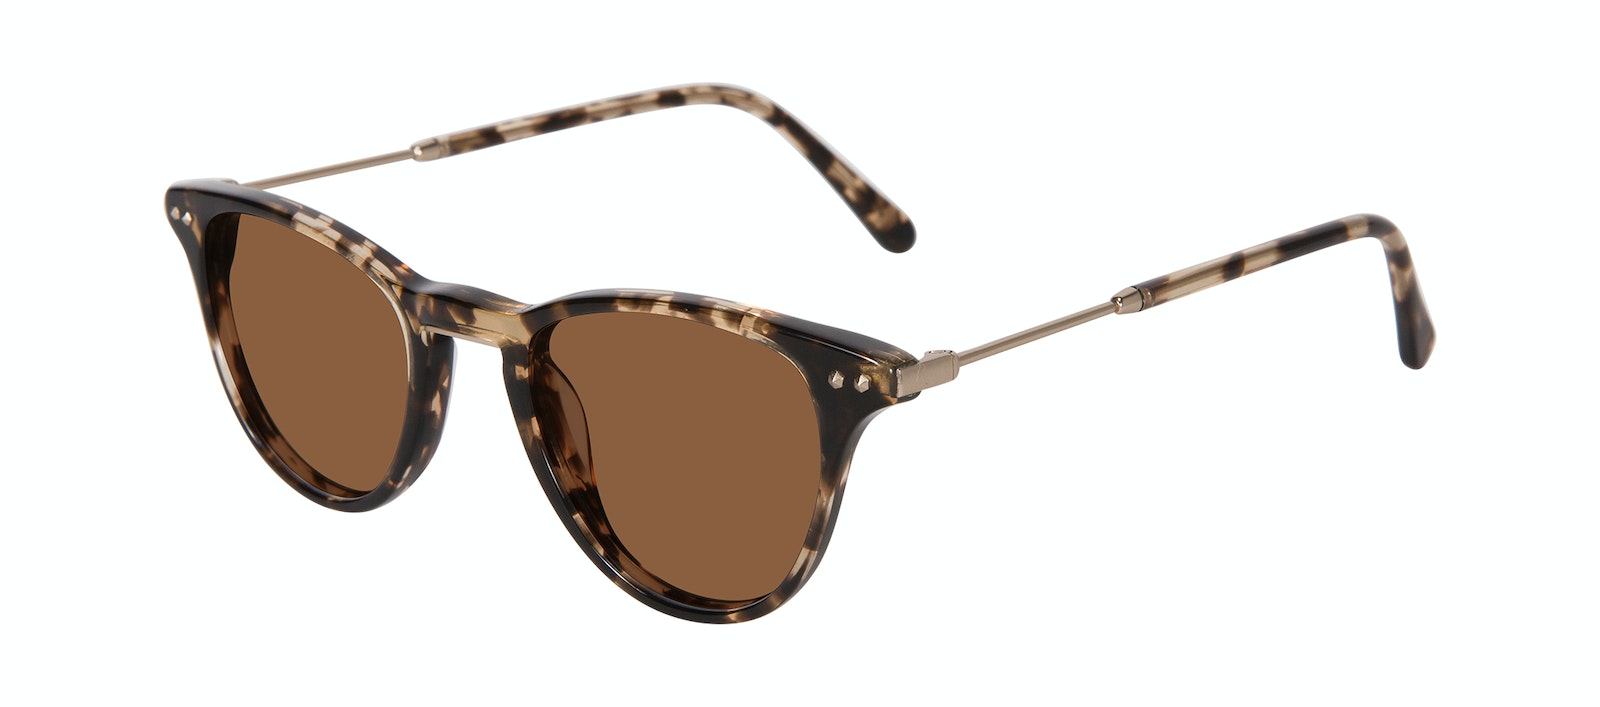 Affordable Fashion Glasses Cat Eye Sunglasses Women Halo Leopard Tilt